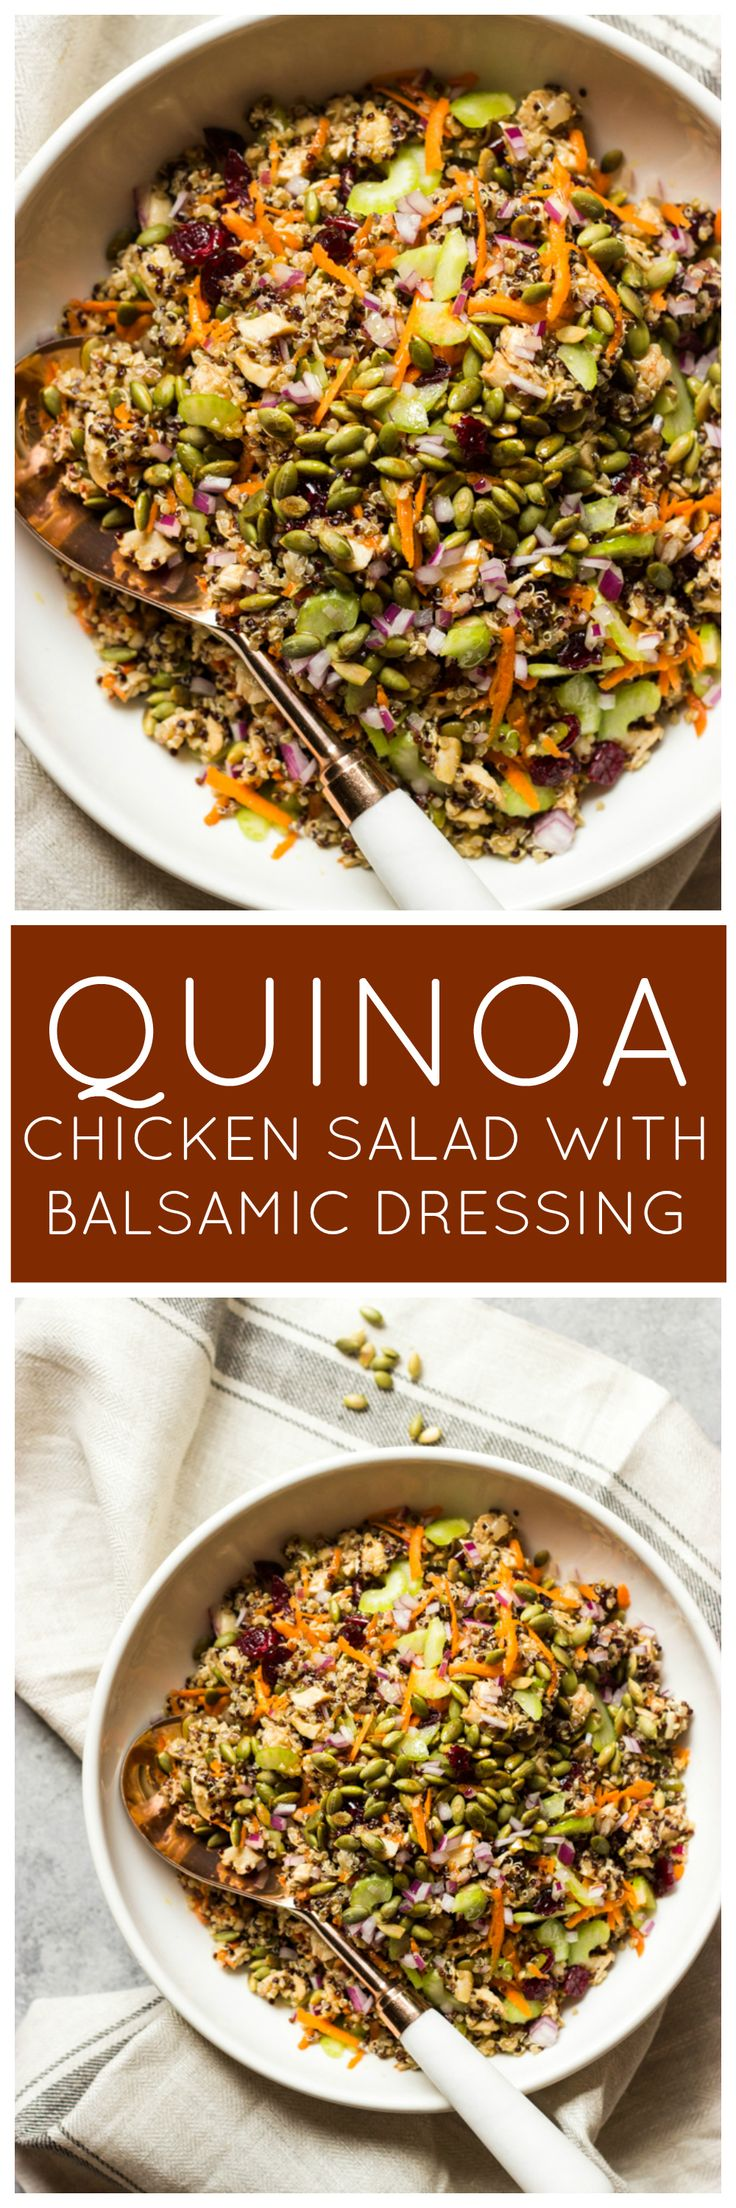 Chicken Quinoa Salad with Balsamic Dressing - ultimate fall salad with chicken, quinoa, crunchy veggies, cranberries, and pumpkin seeds | littlebroken.com @littlebroken